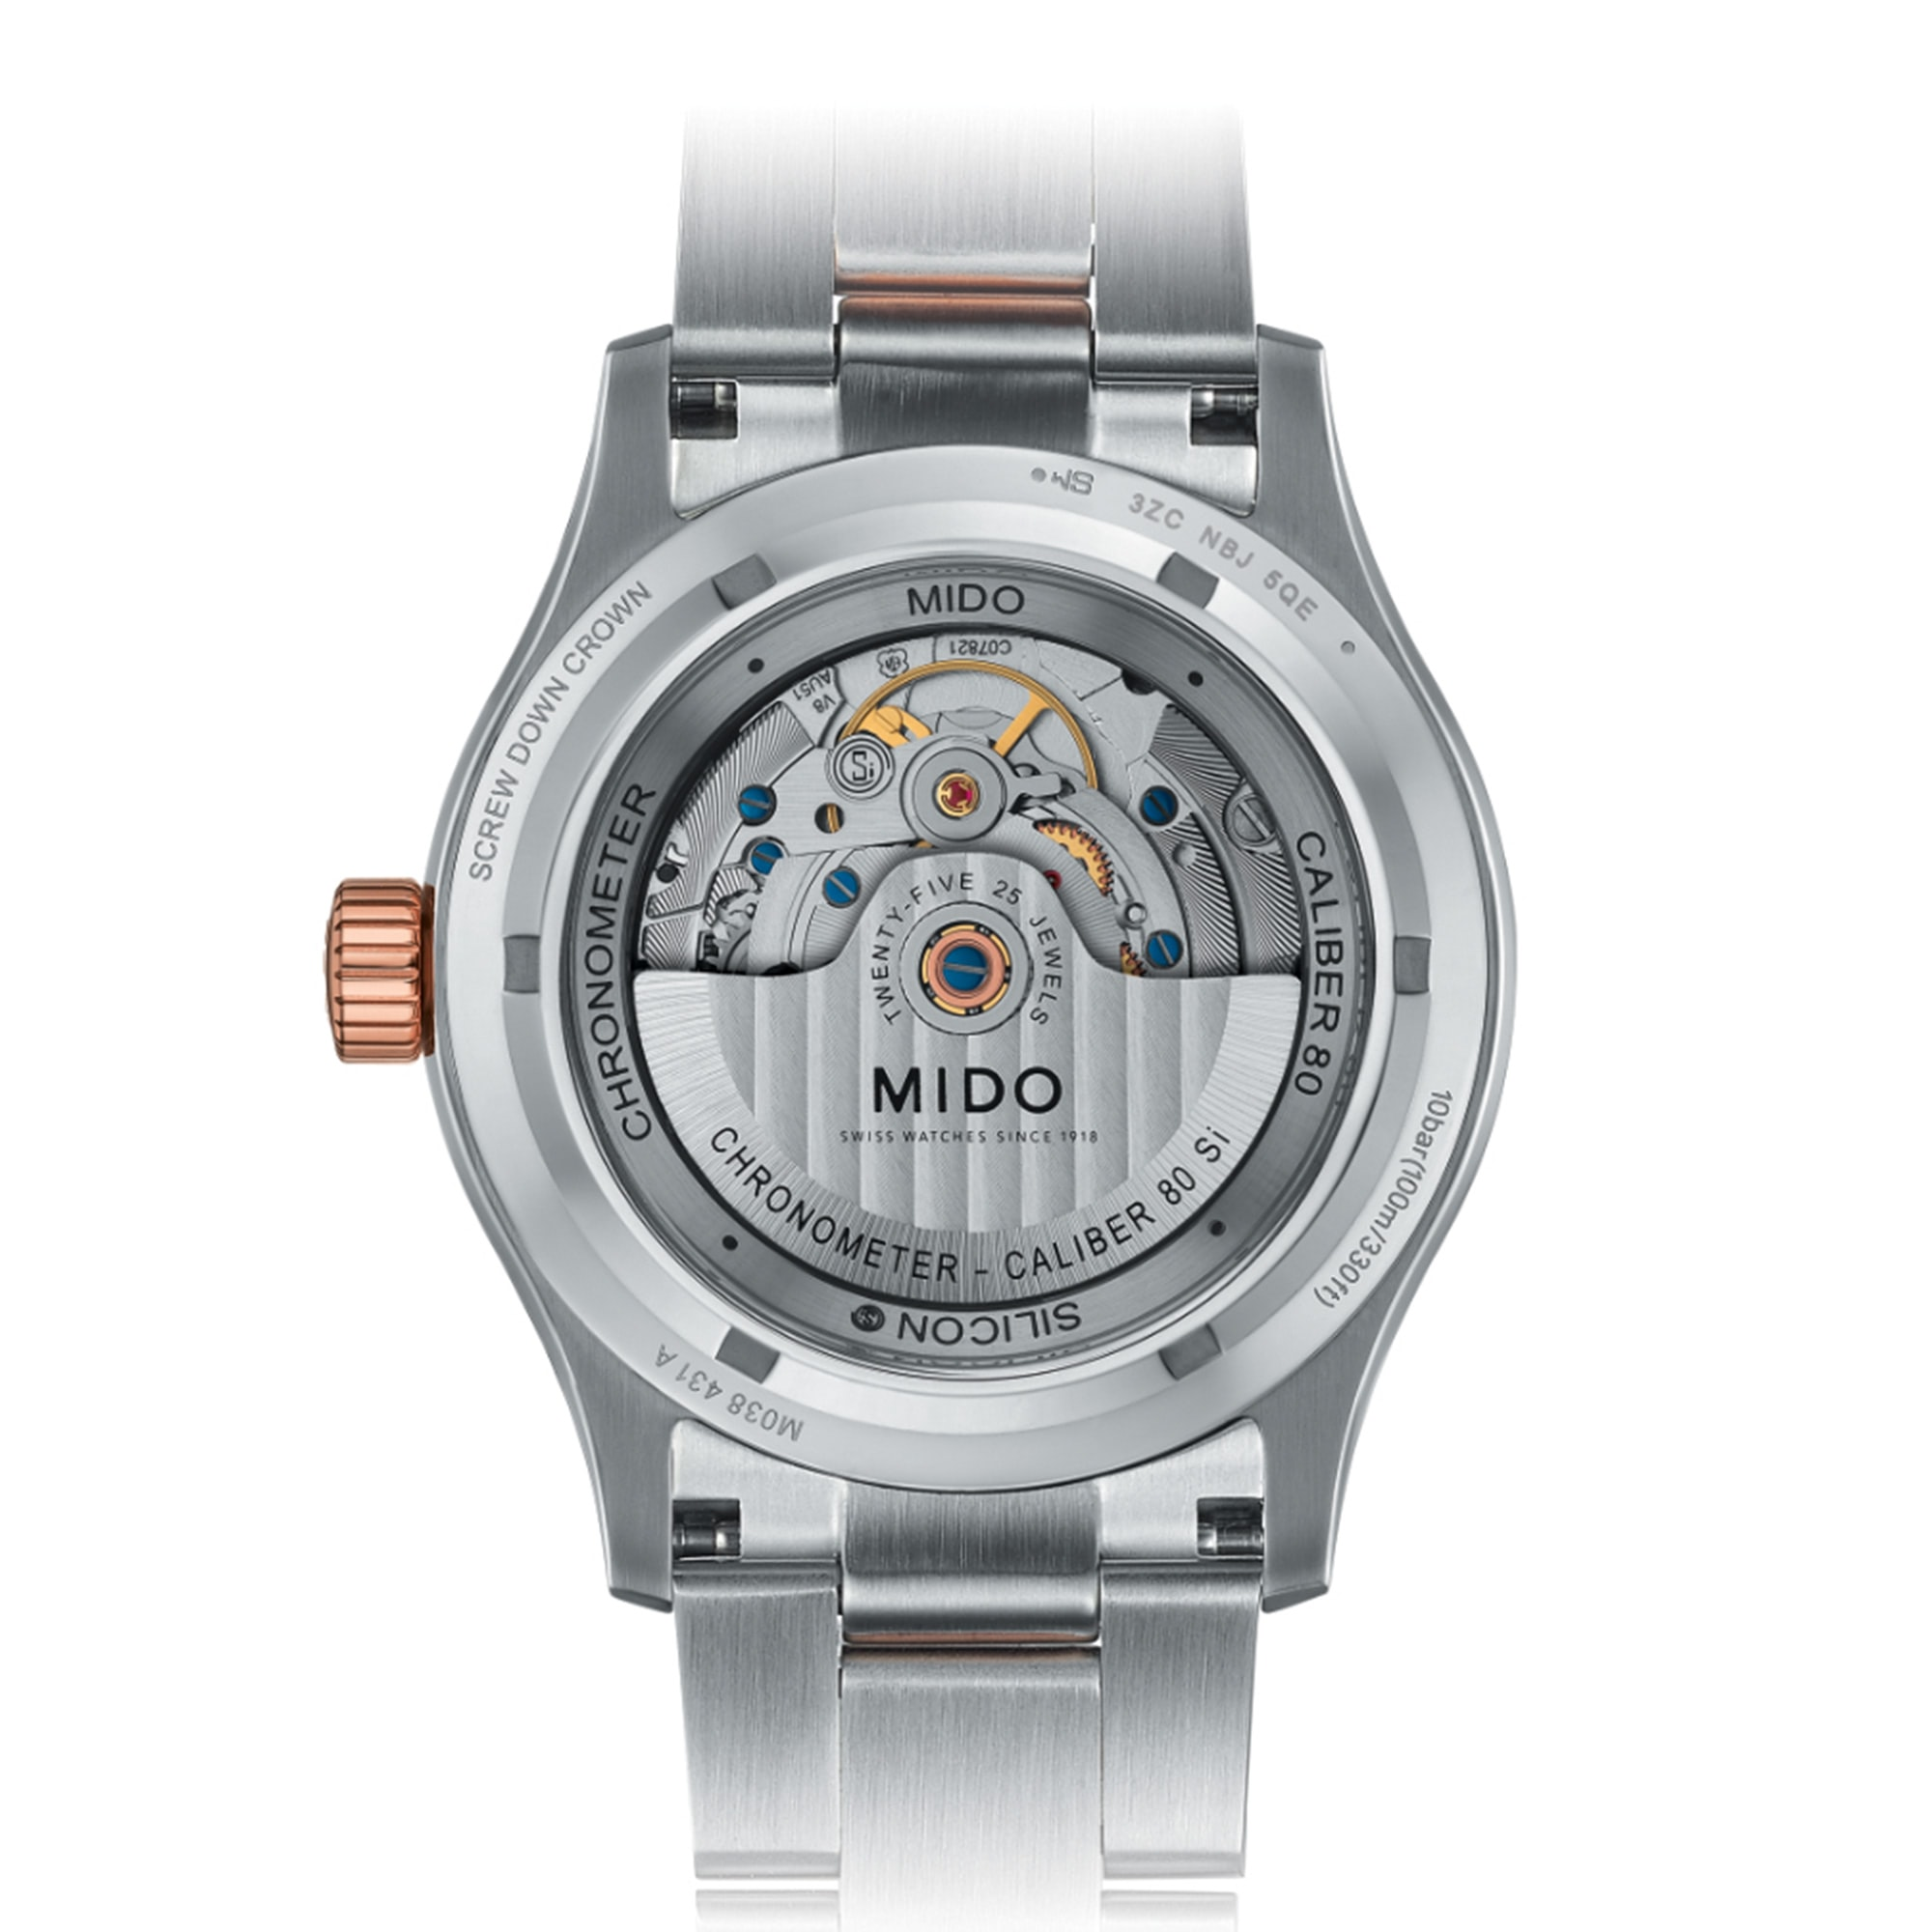 Introducing: The Mido Multifort Chronometer Mido COSC back